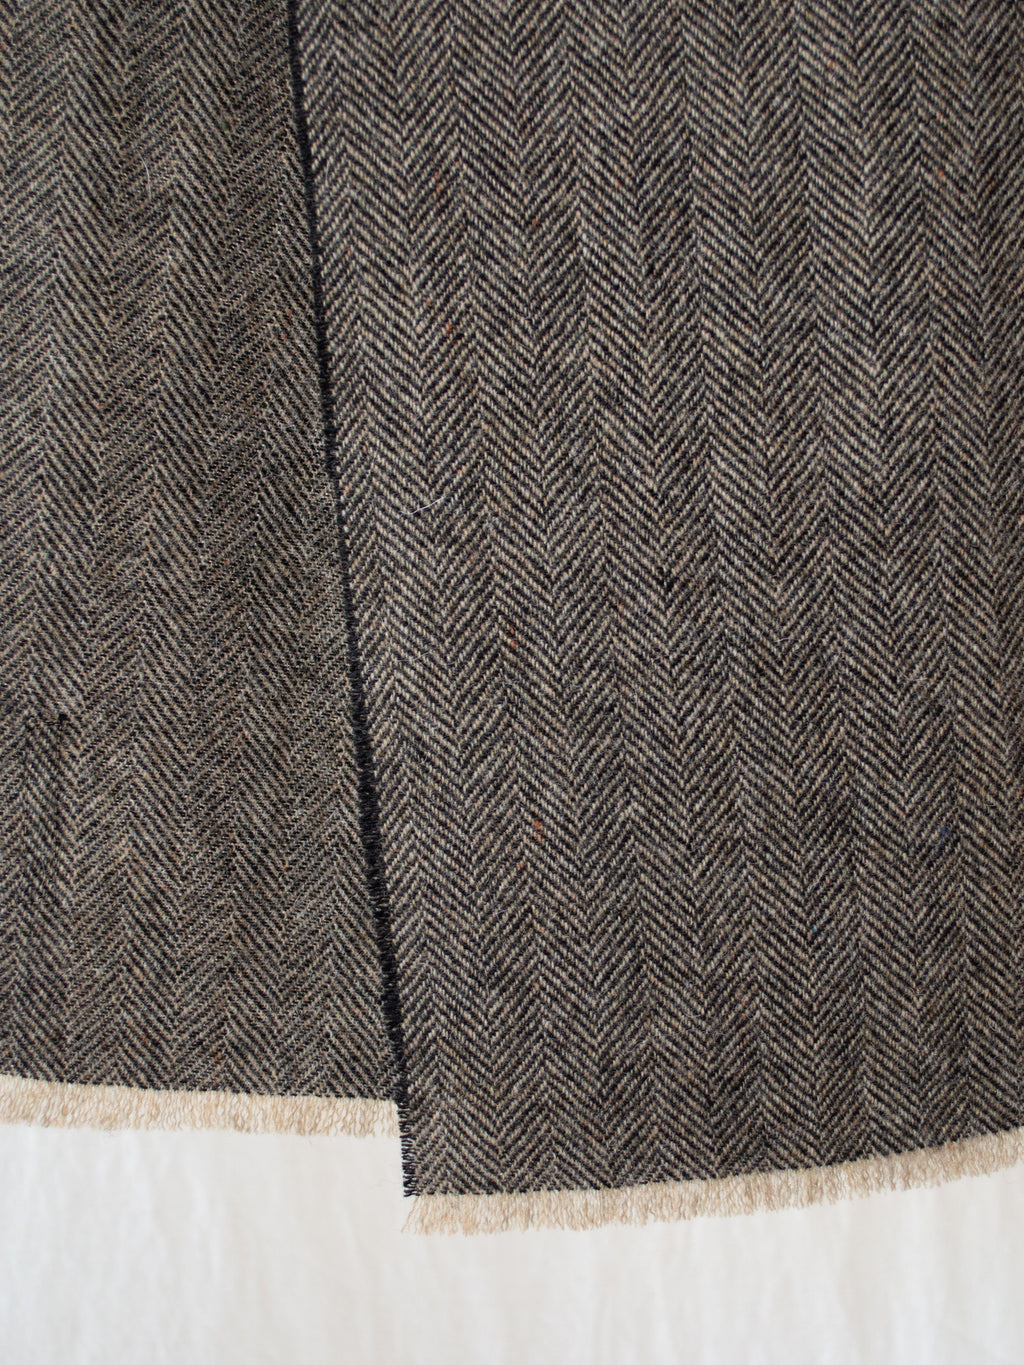 Namu Shop - Eastlogue Wool Scarf - Black & Beige Herringbone